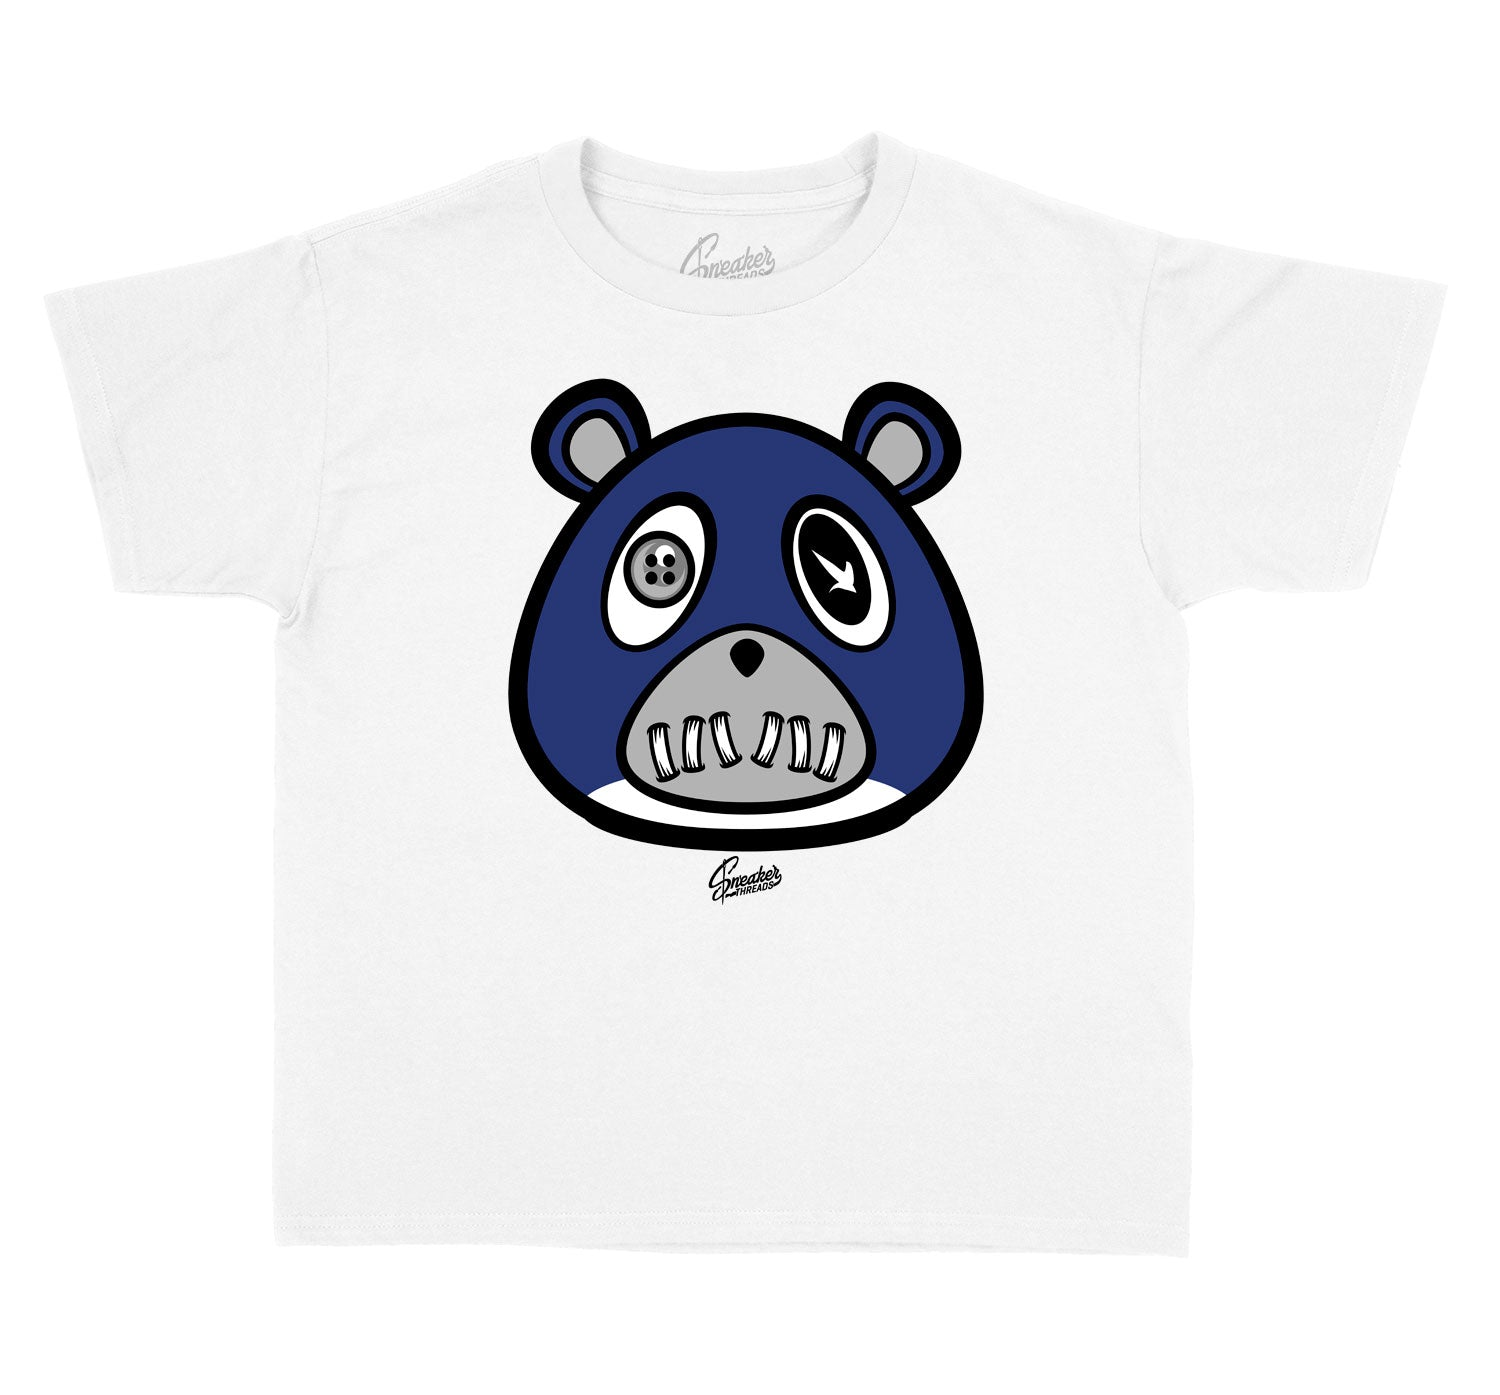 Midnight Navy Jordan 1 sneaker collection to match kids tees